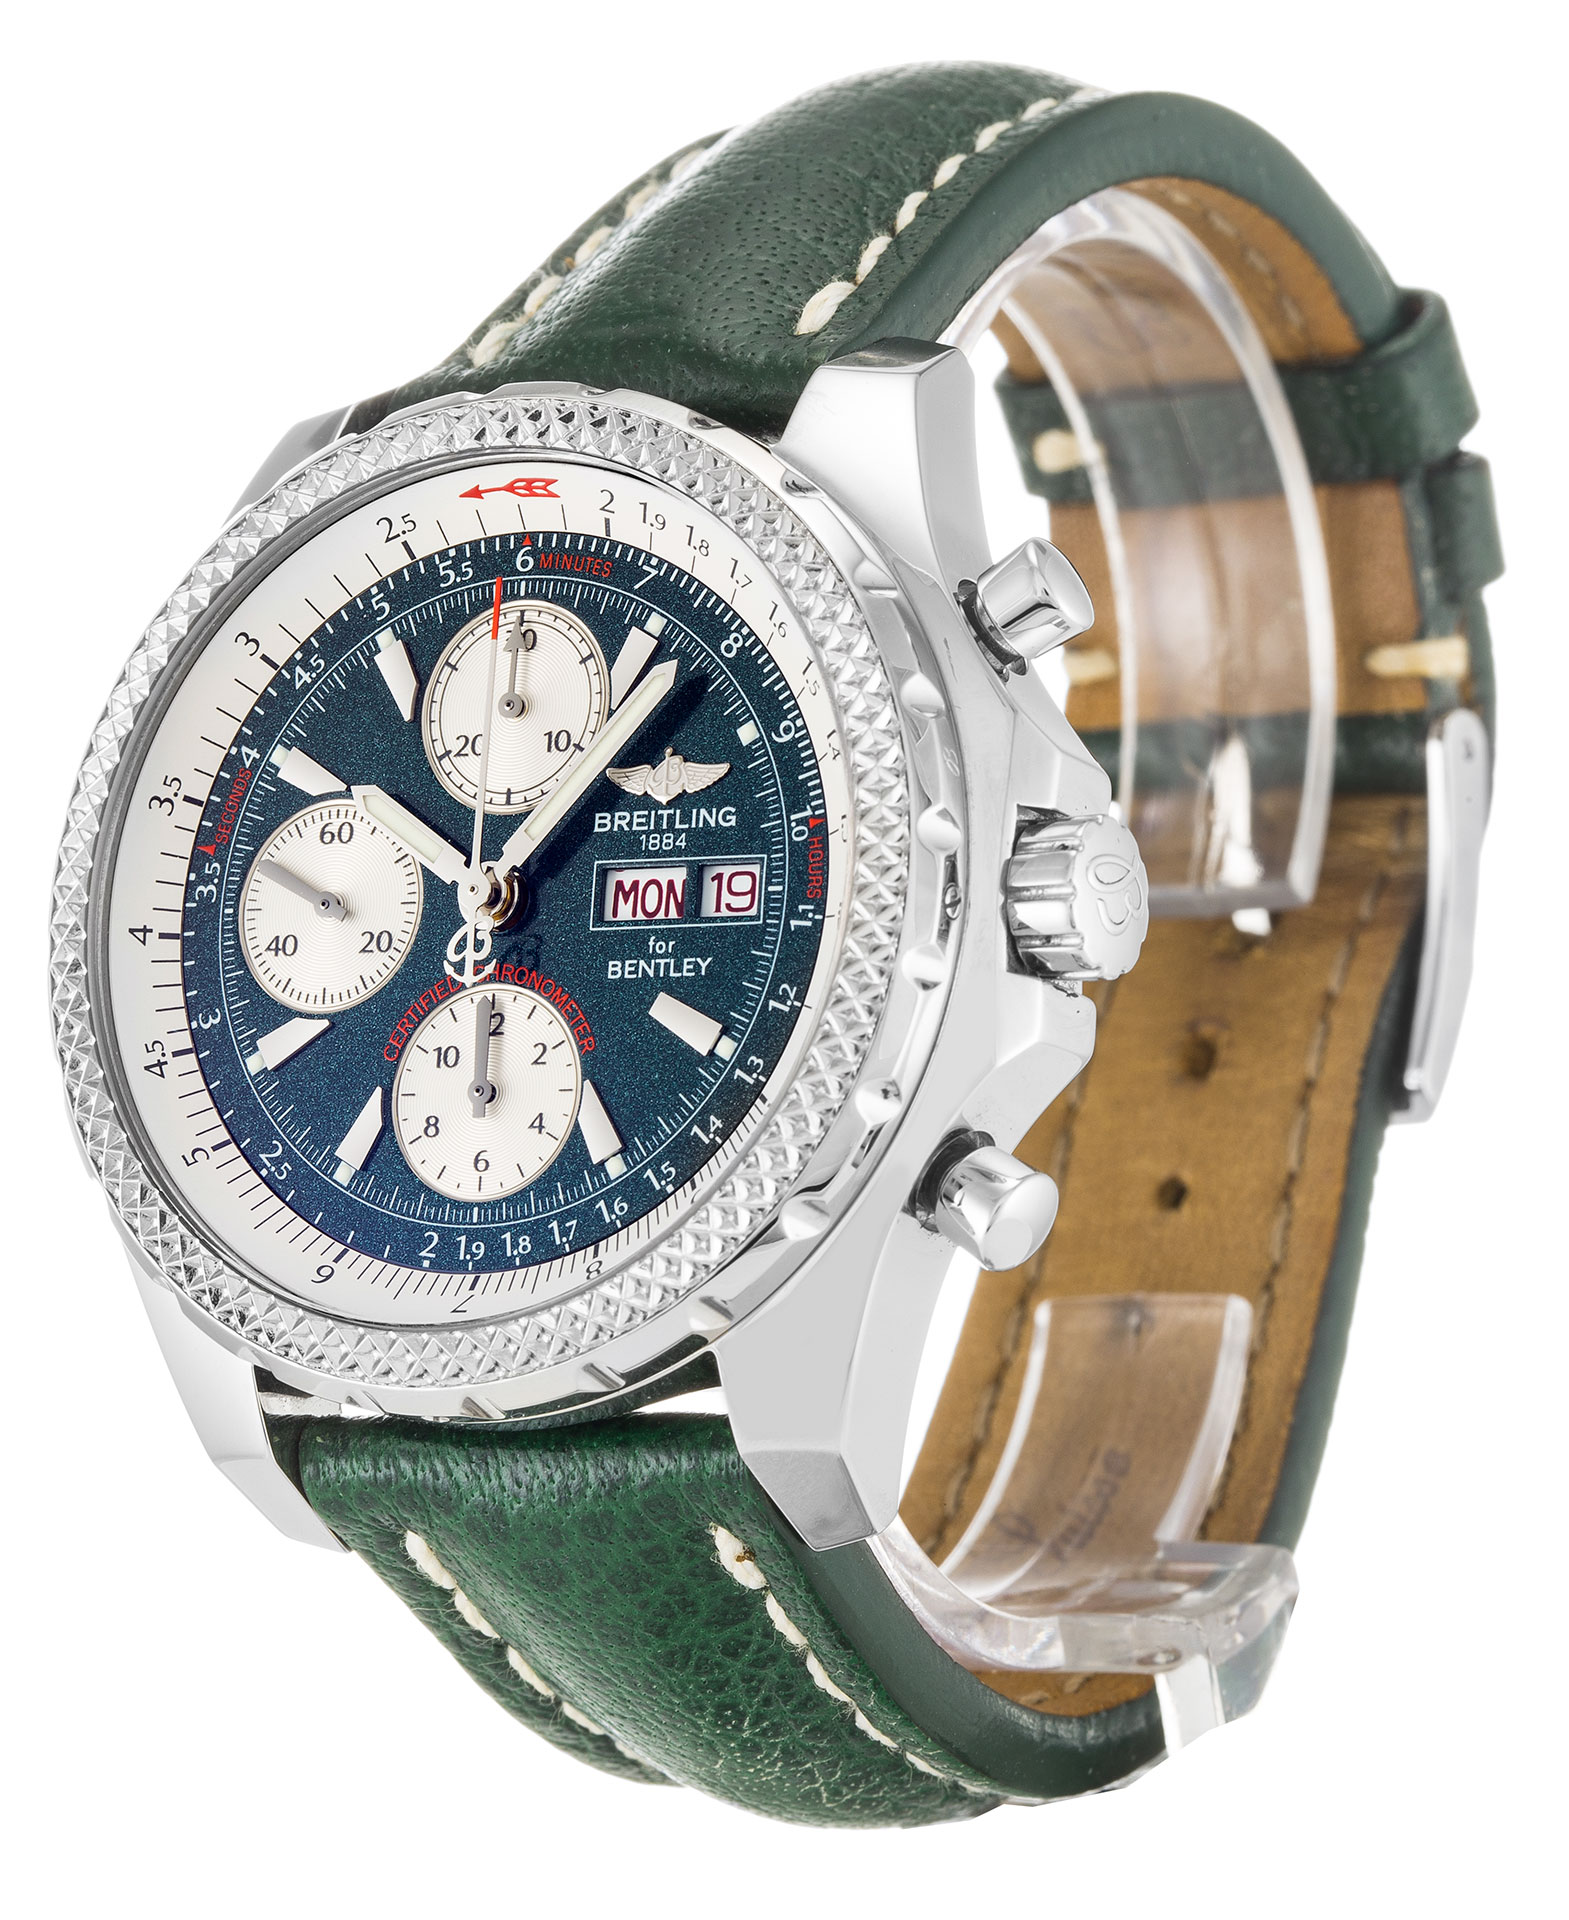 Breitling Bentley Chronograph Replica Watches For Sale